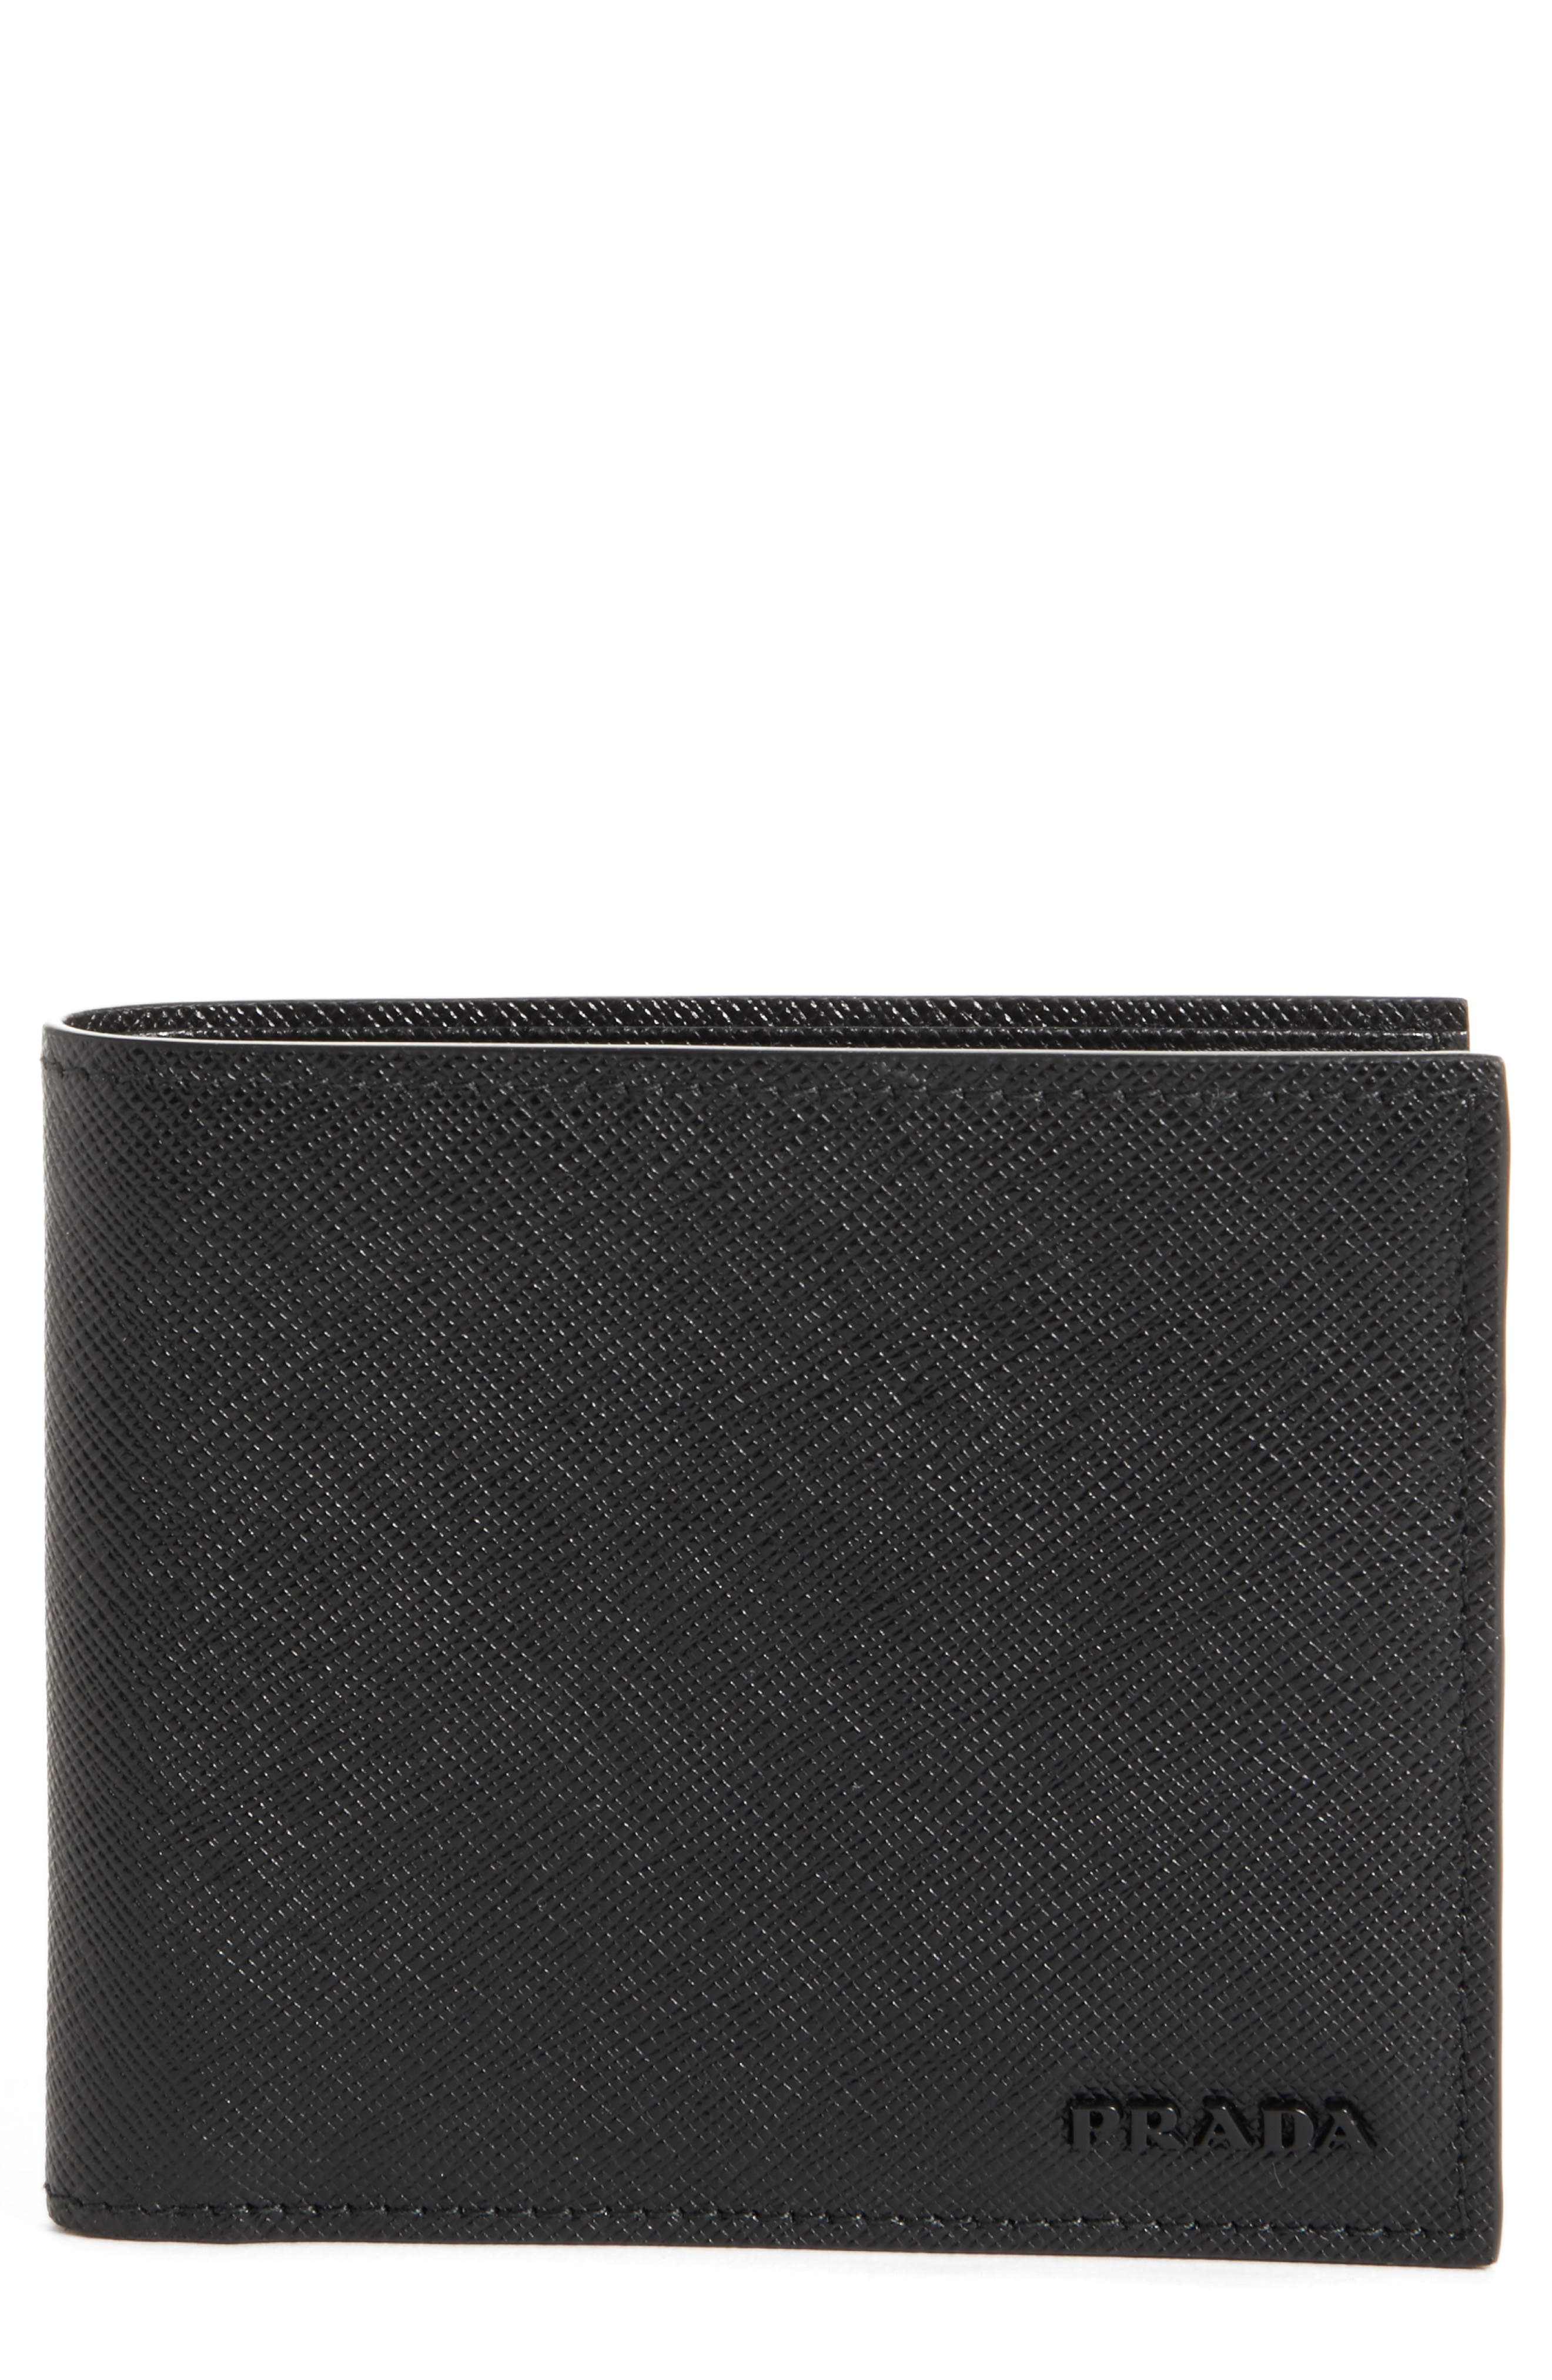 Saffiano Leather Bifold Wallet,                         Main,                         color, 001